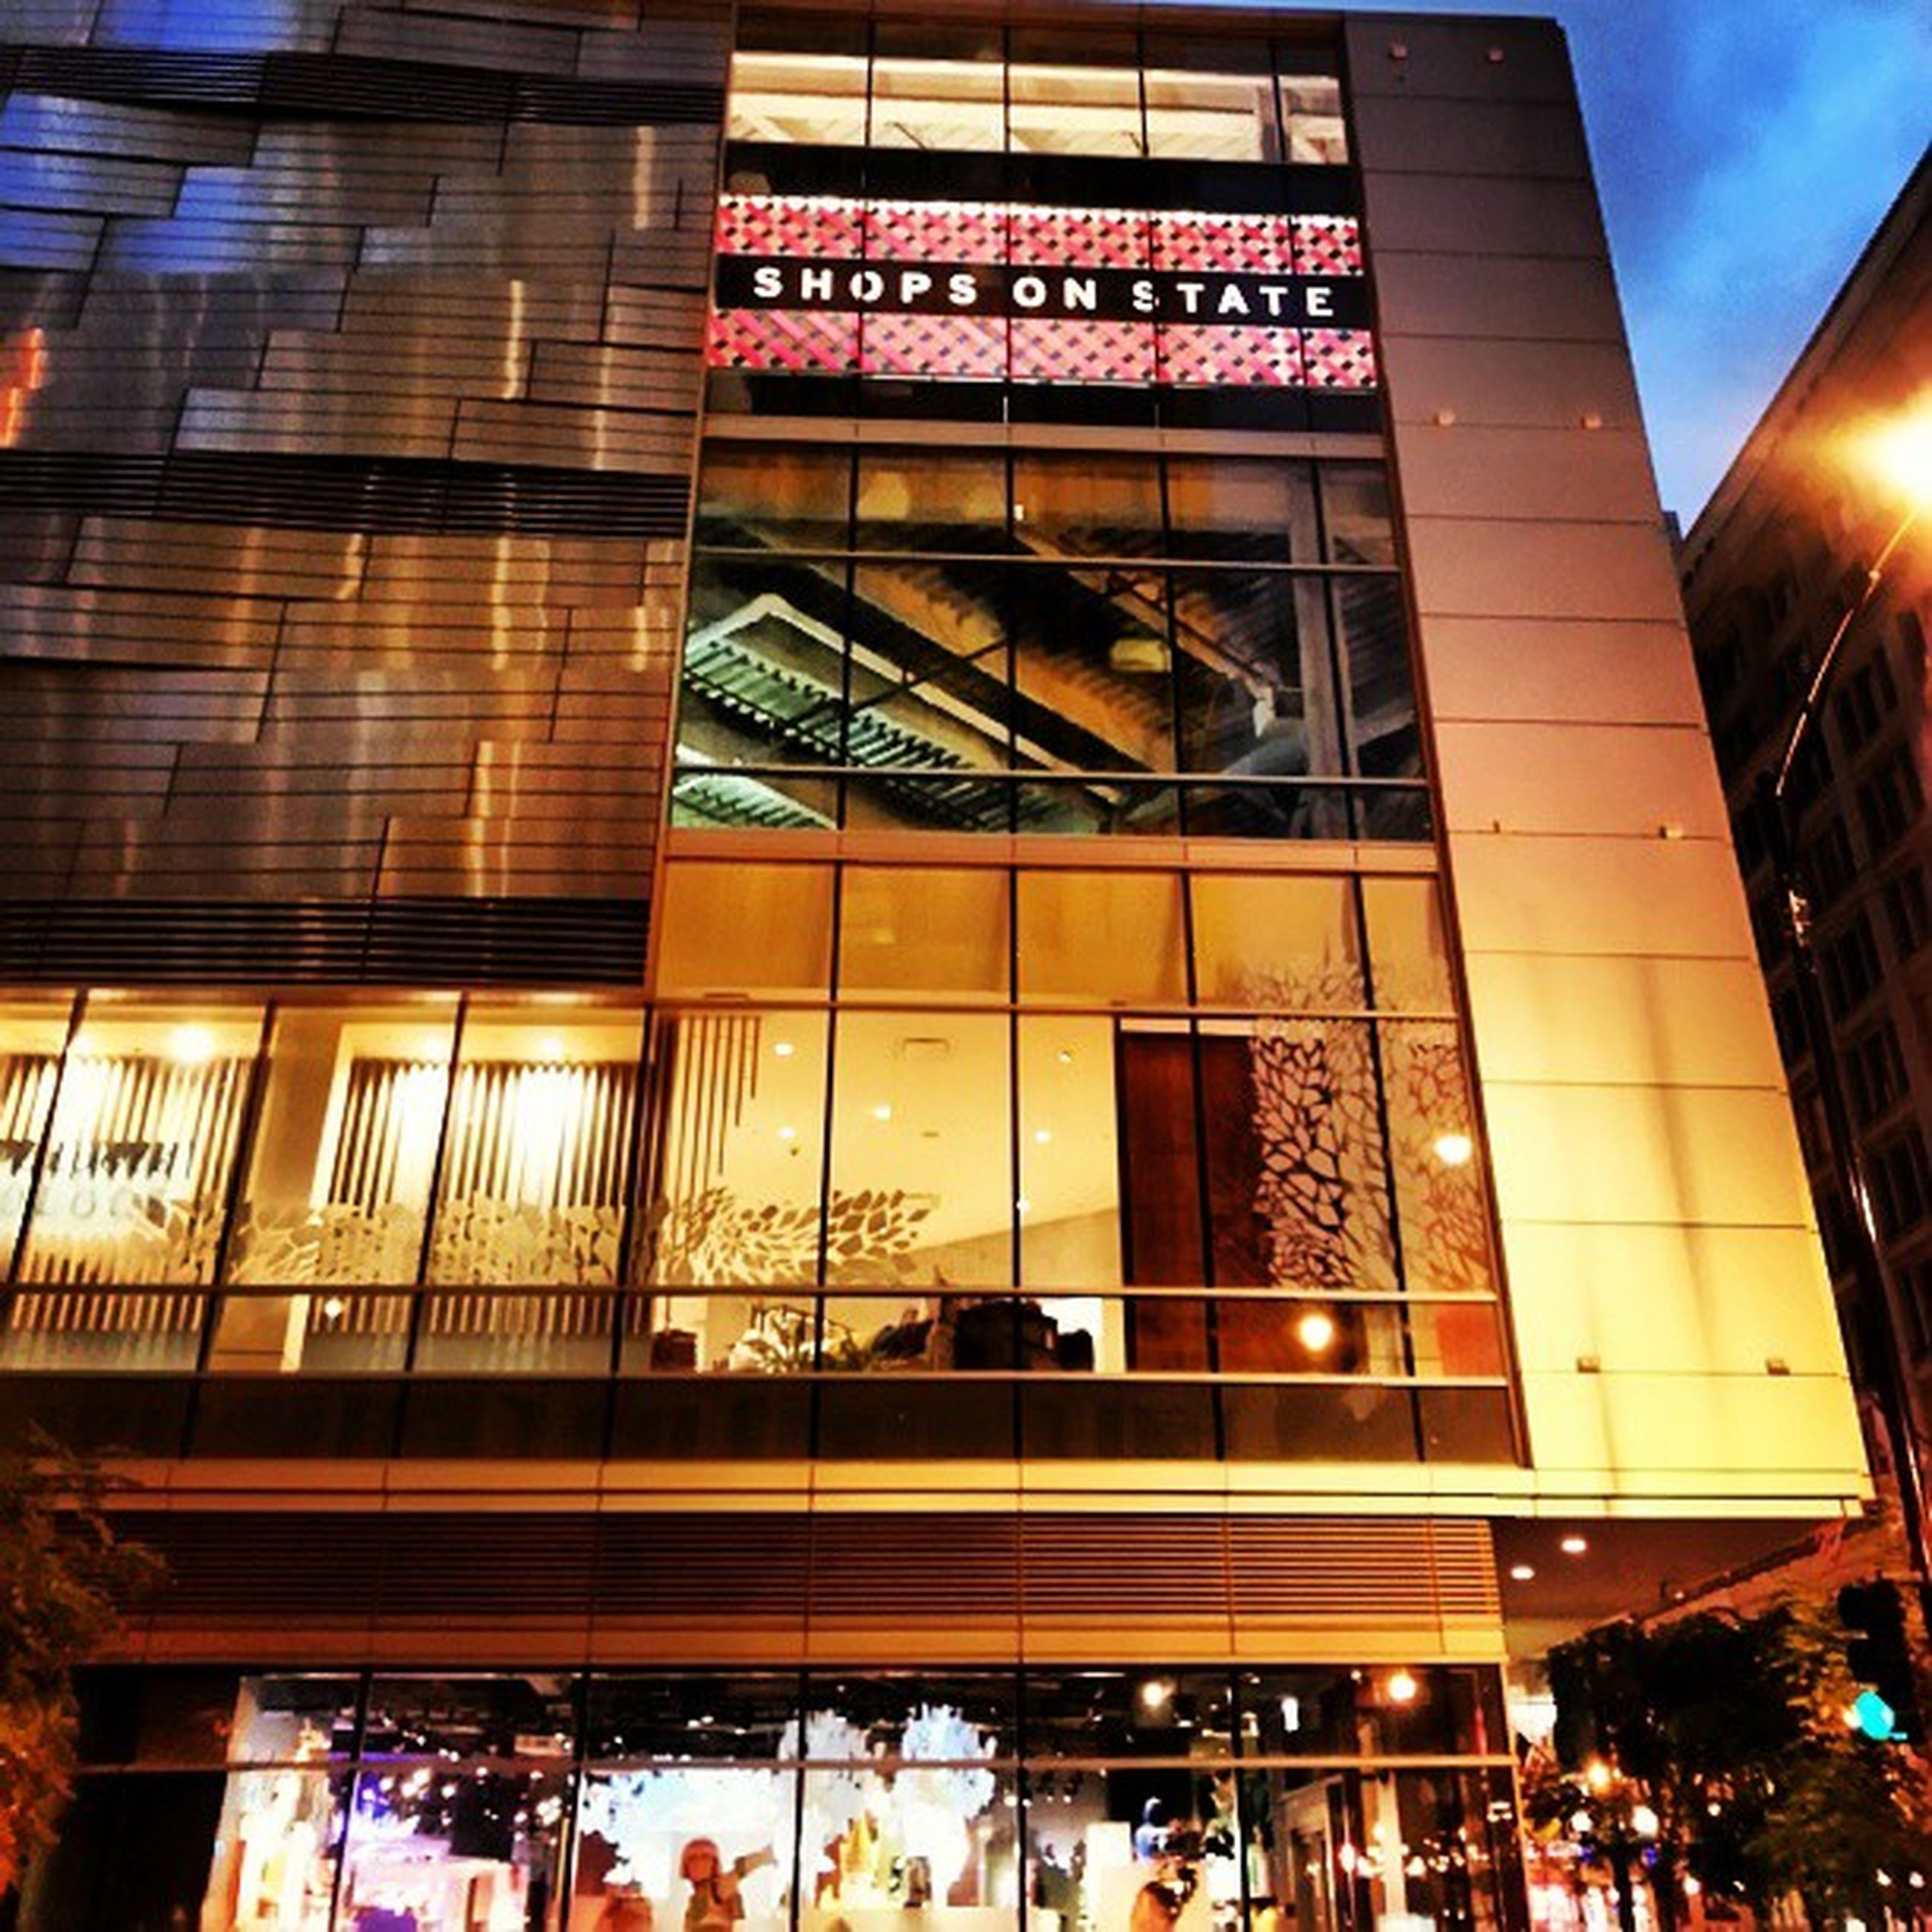 architecture, built structure, building exterior, low angle view, text, illuminated, city, window, building, glass - material, large group of people, non-western script, city life, western script, store, incidental people, modern, travel destinations, indoors, shopping mall